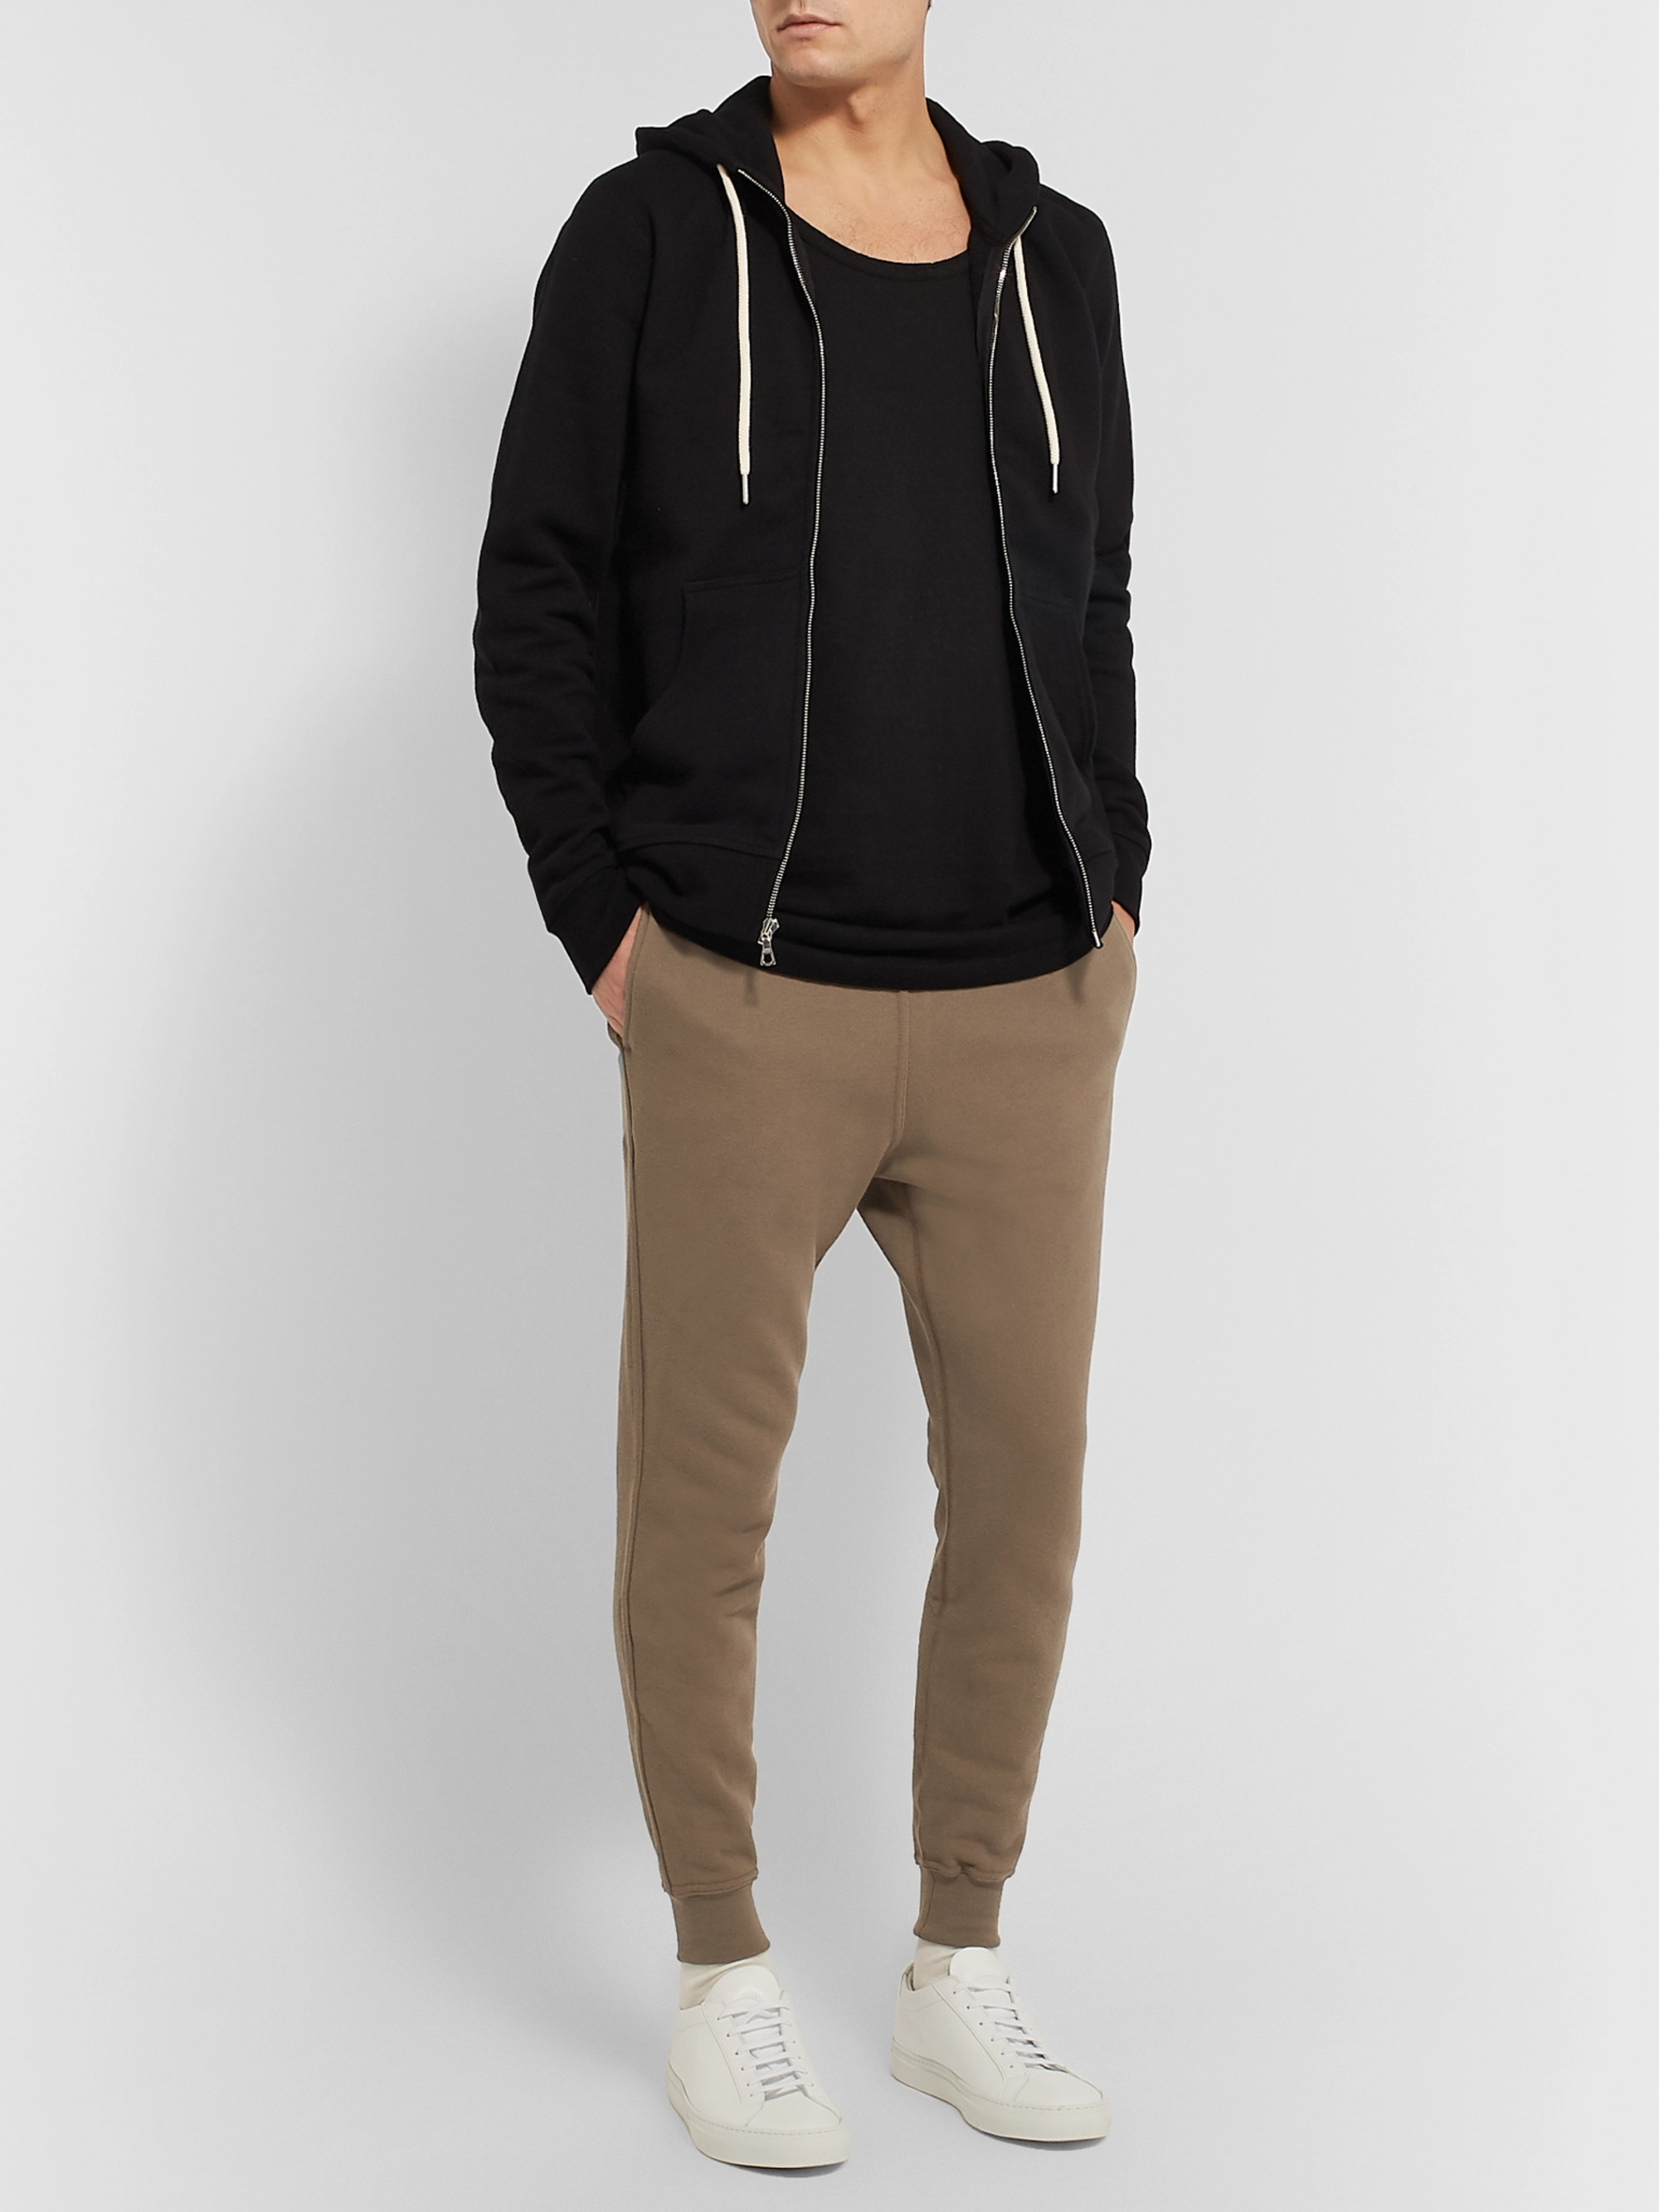 John Elliott Ebisu Slim-Fit Tapered Loopback Cotton-Jersey Sweatpants